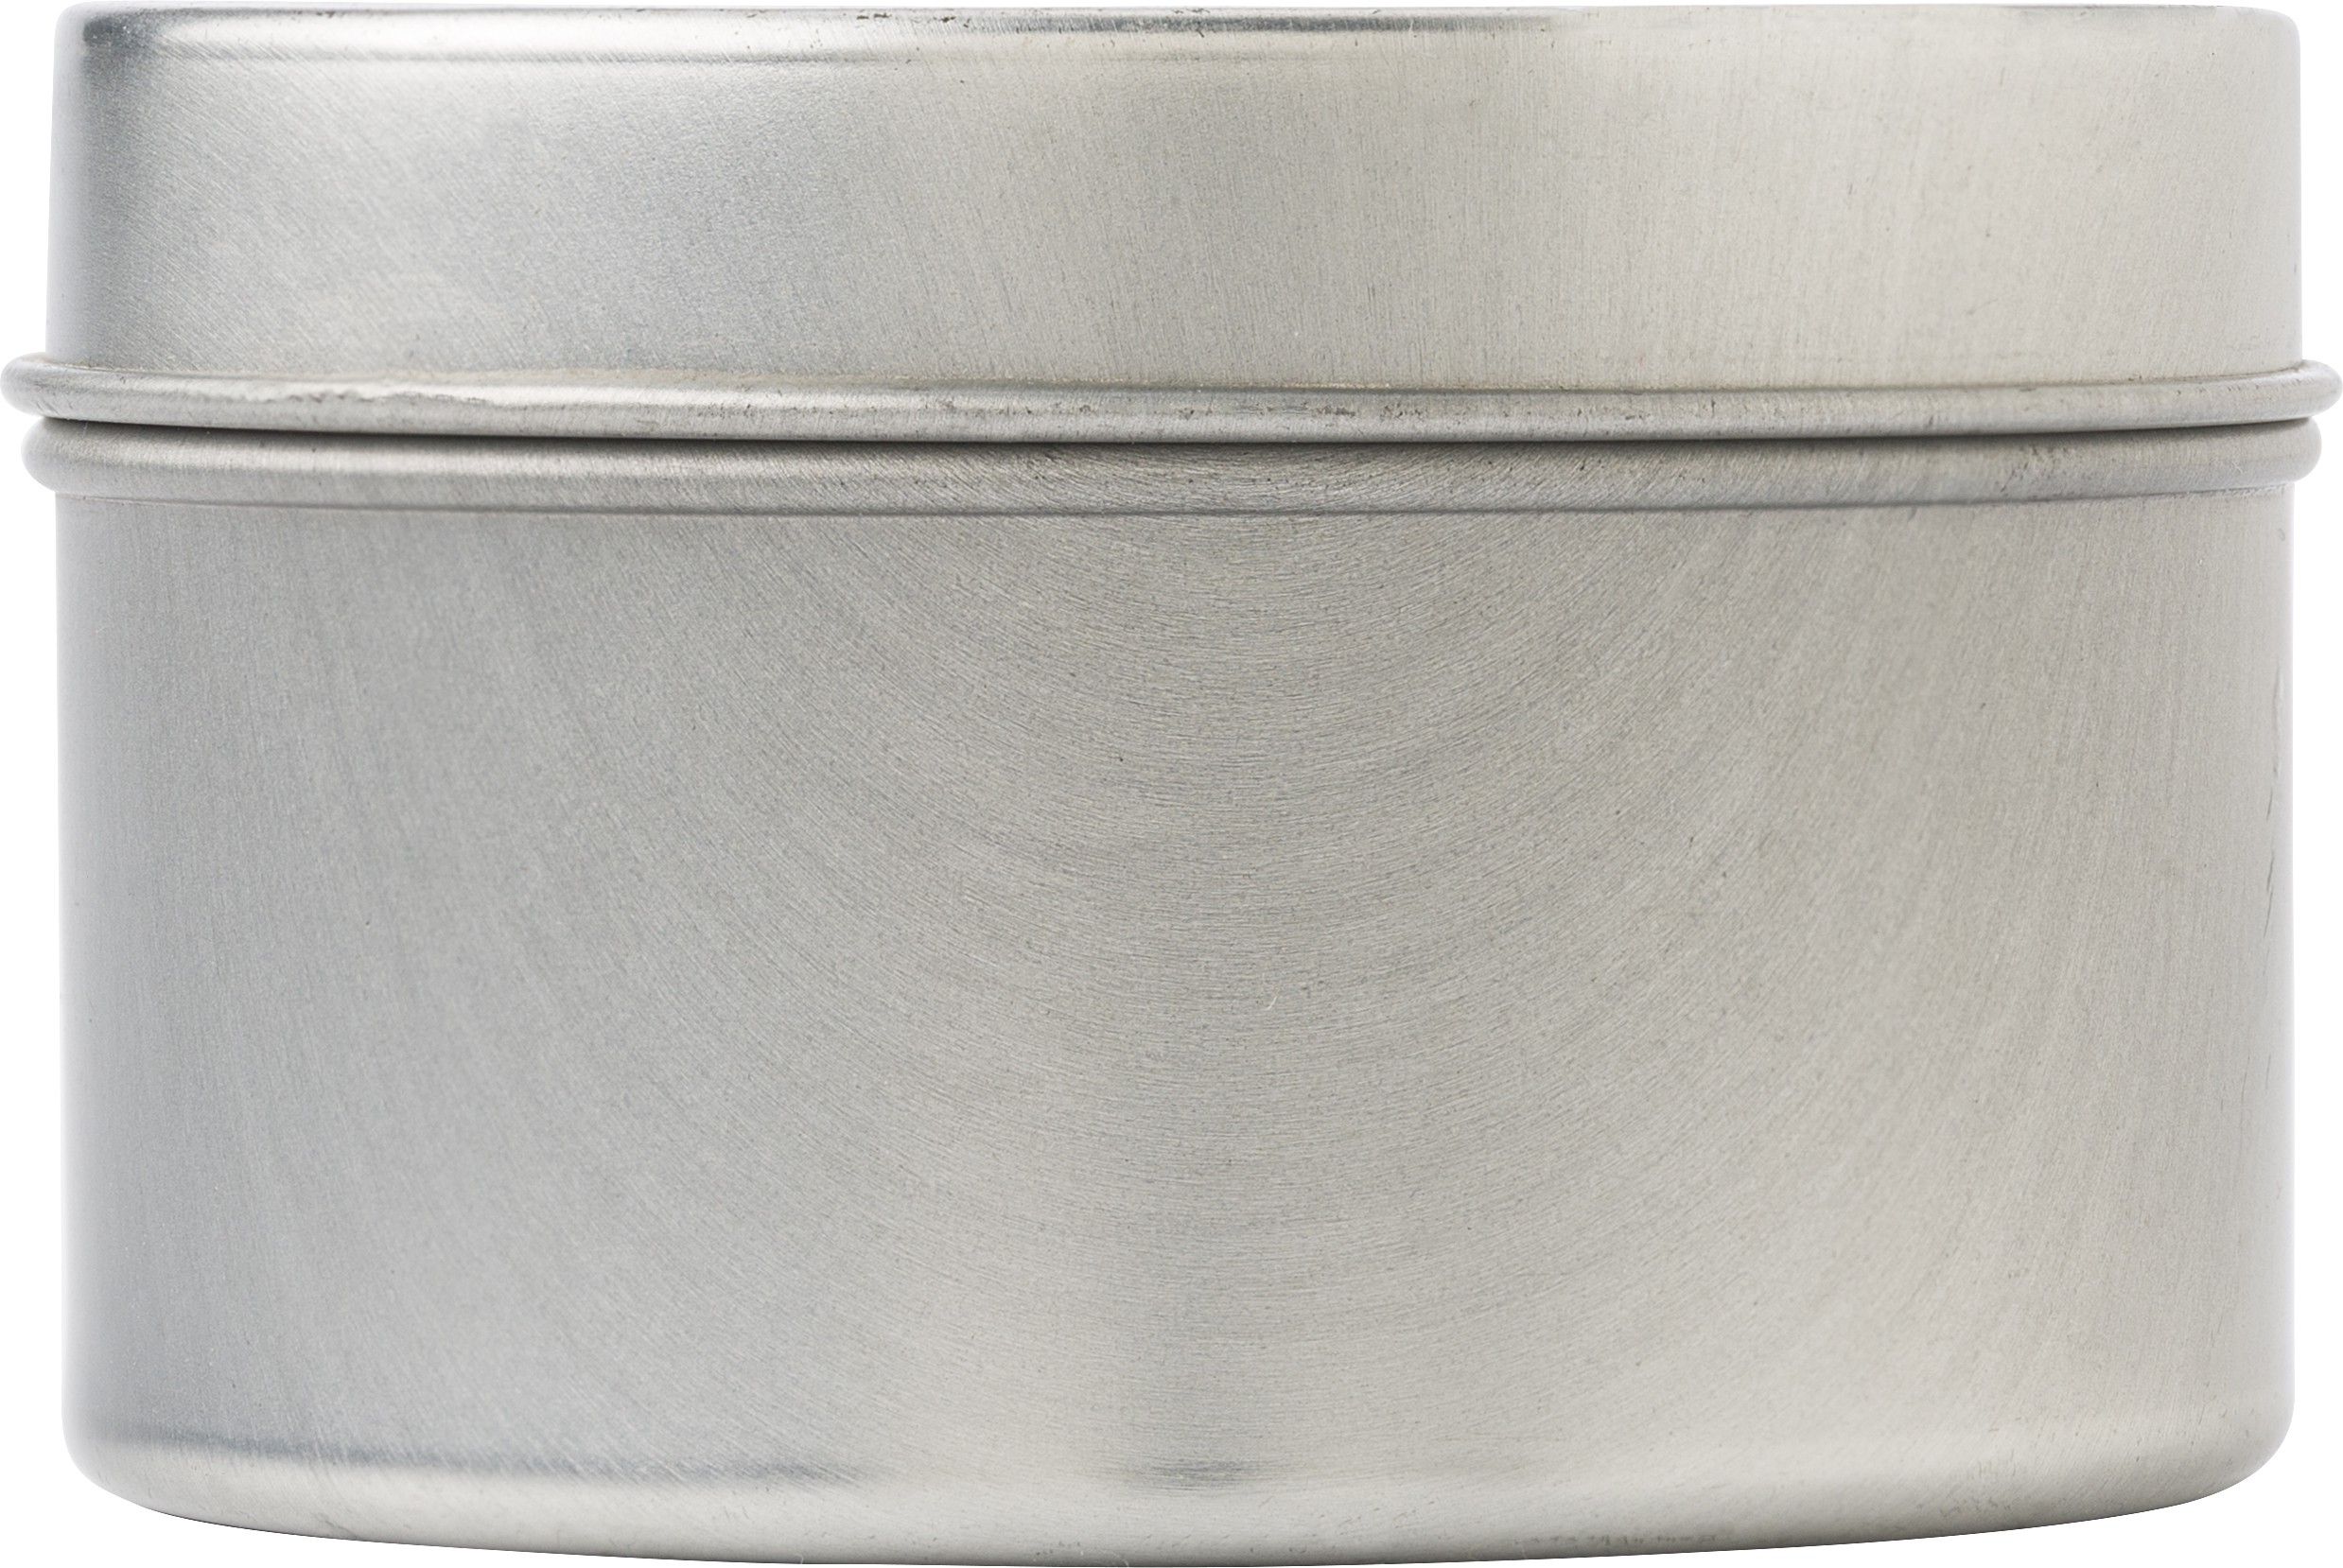 Citronella Candle In Tin Container, Silver (candle)